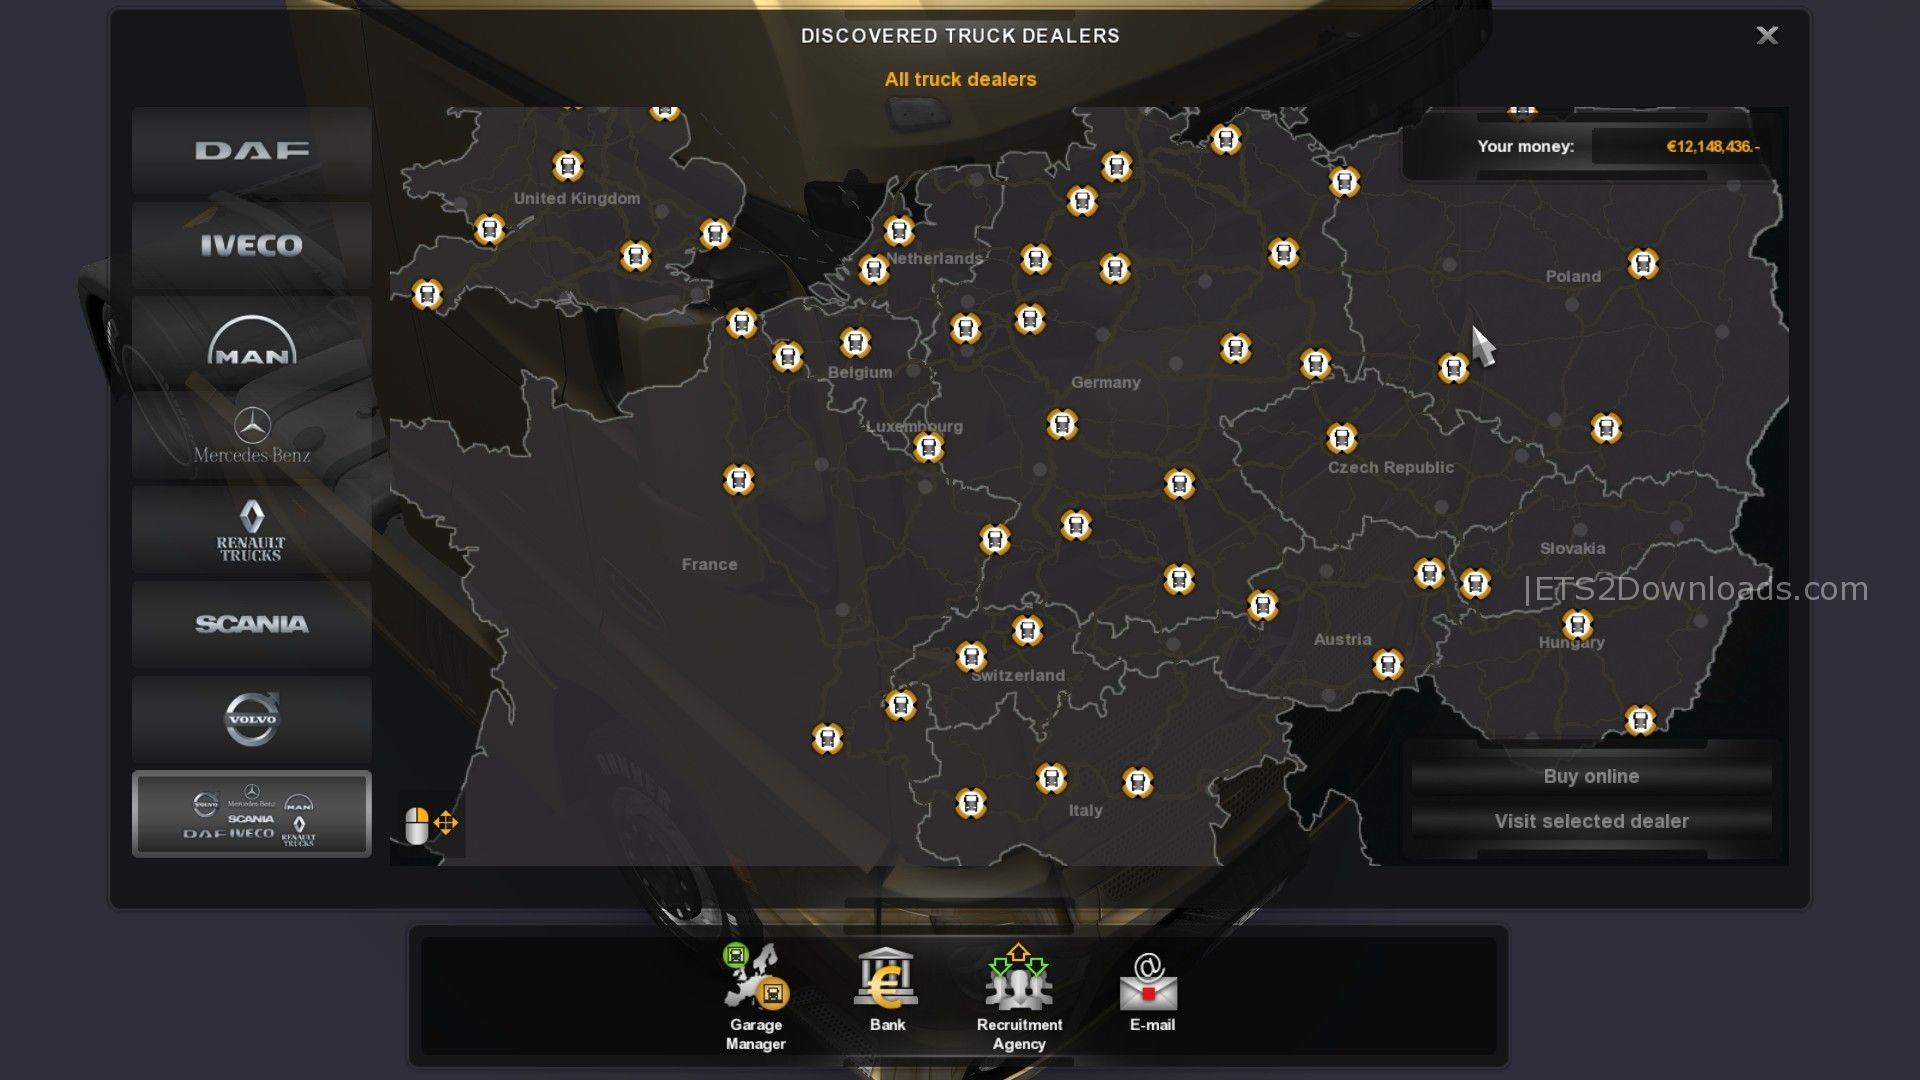 Euro truck simulator 2 truck dealers map for Mercedes benz dealership locations